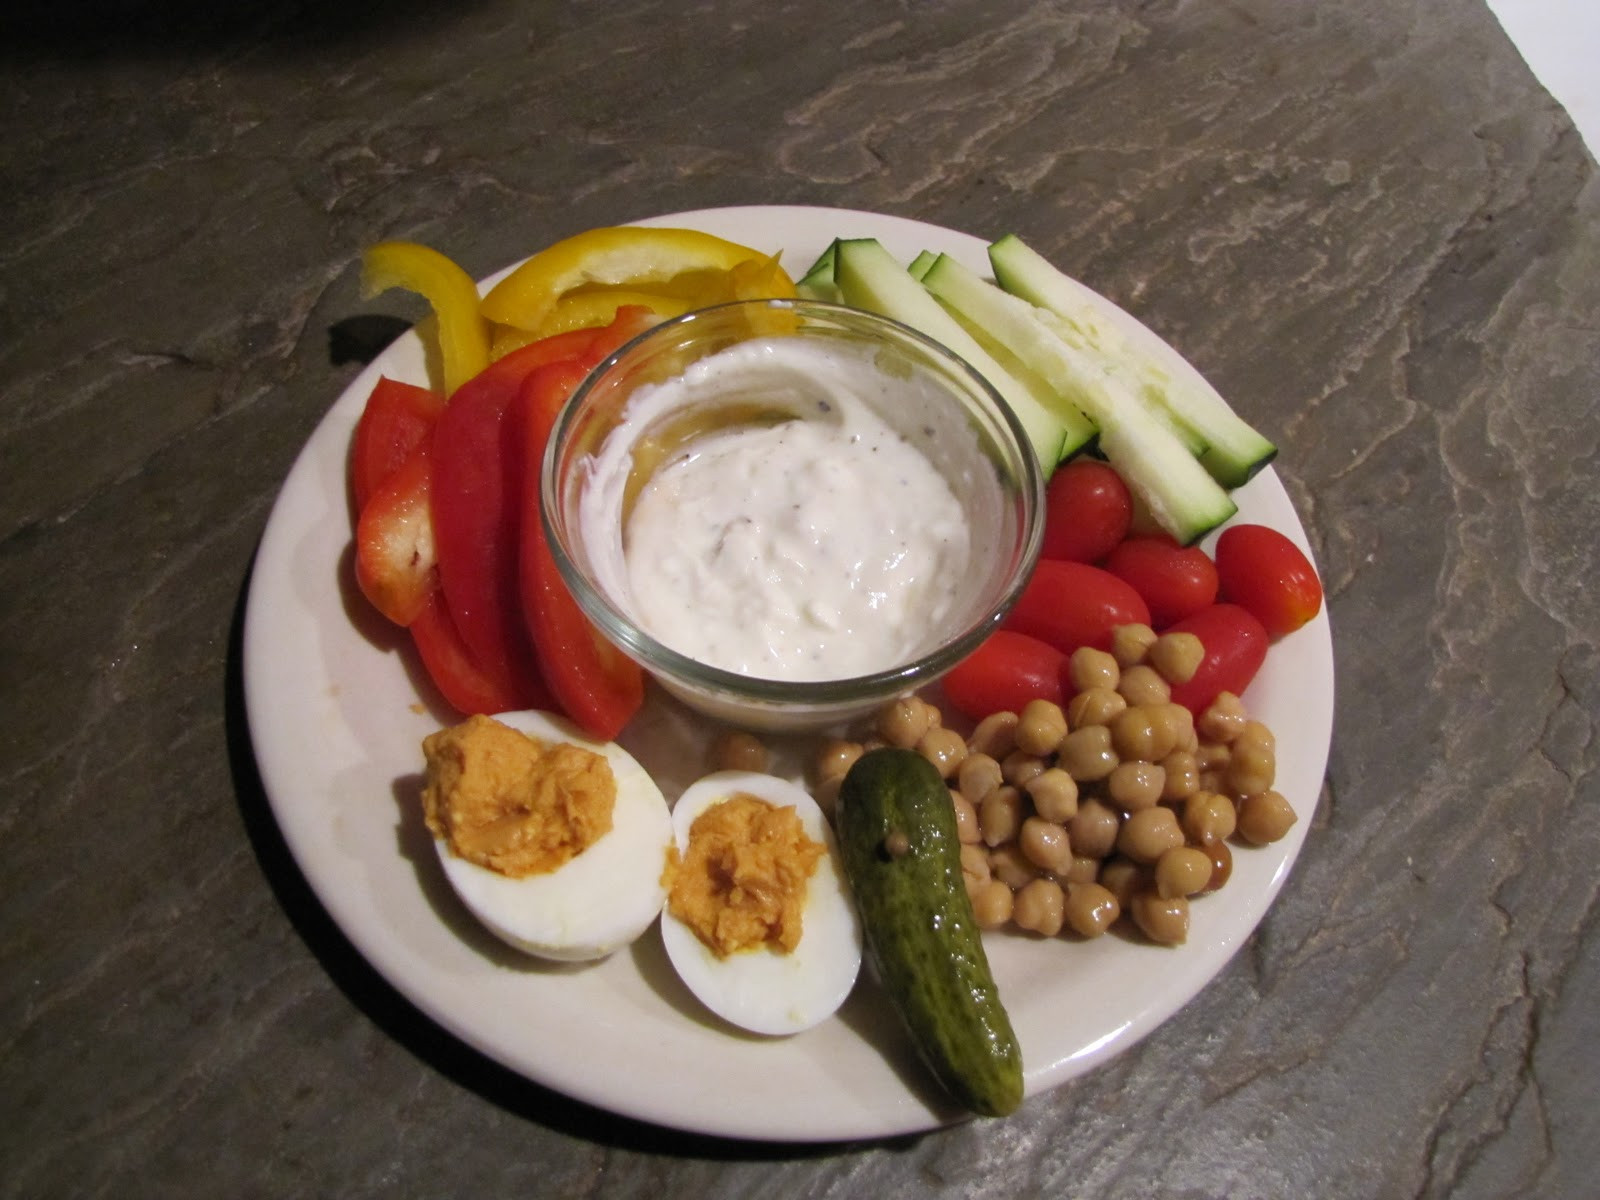 Healthy Snacks For Movies  COLORFUL CANARY Organic And Natural Living Healthy